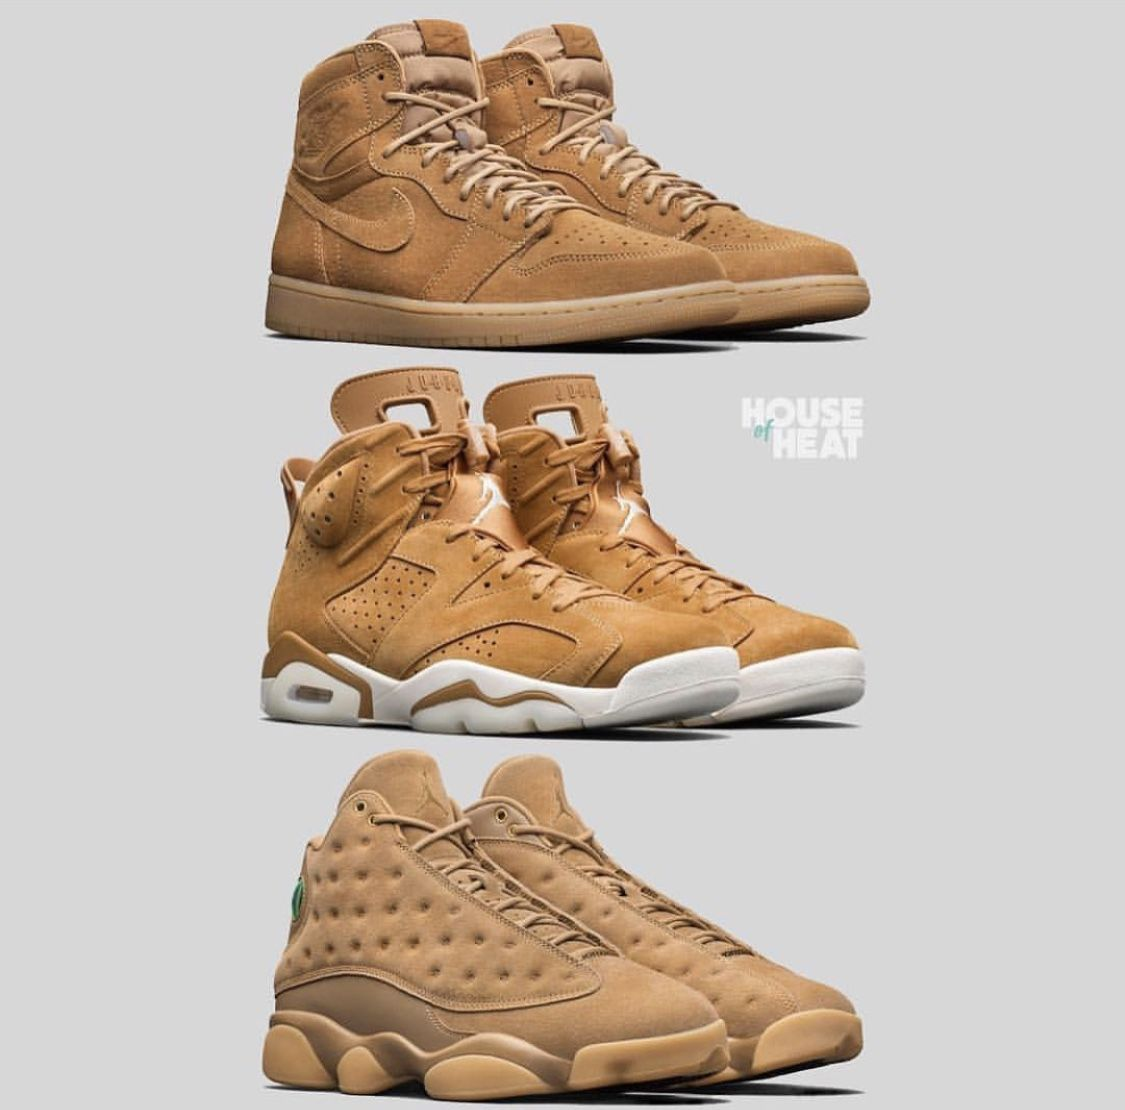 finest selection a2675 ebd3d Air Jordan Wheat Collection. Air Jordan Wheat Collection Running Shoes Nike  ...